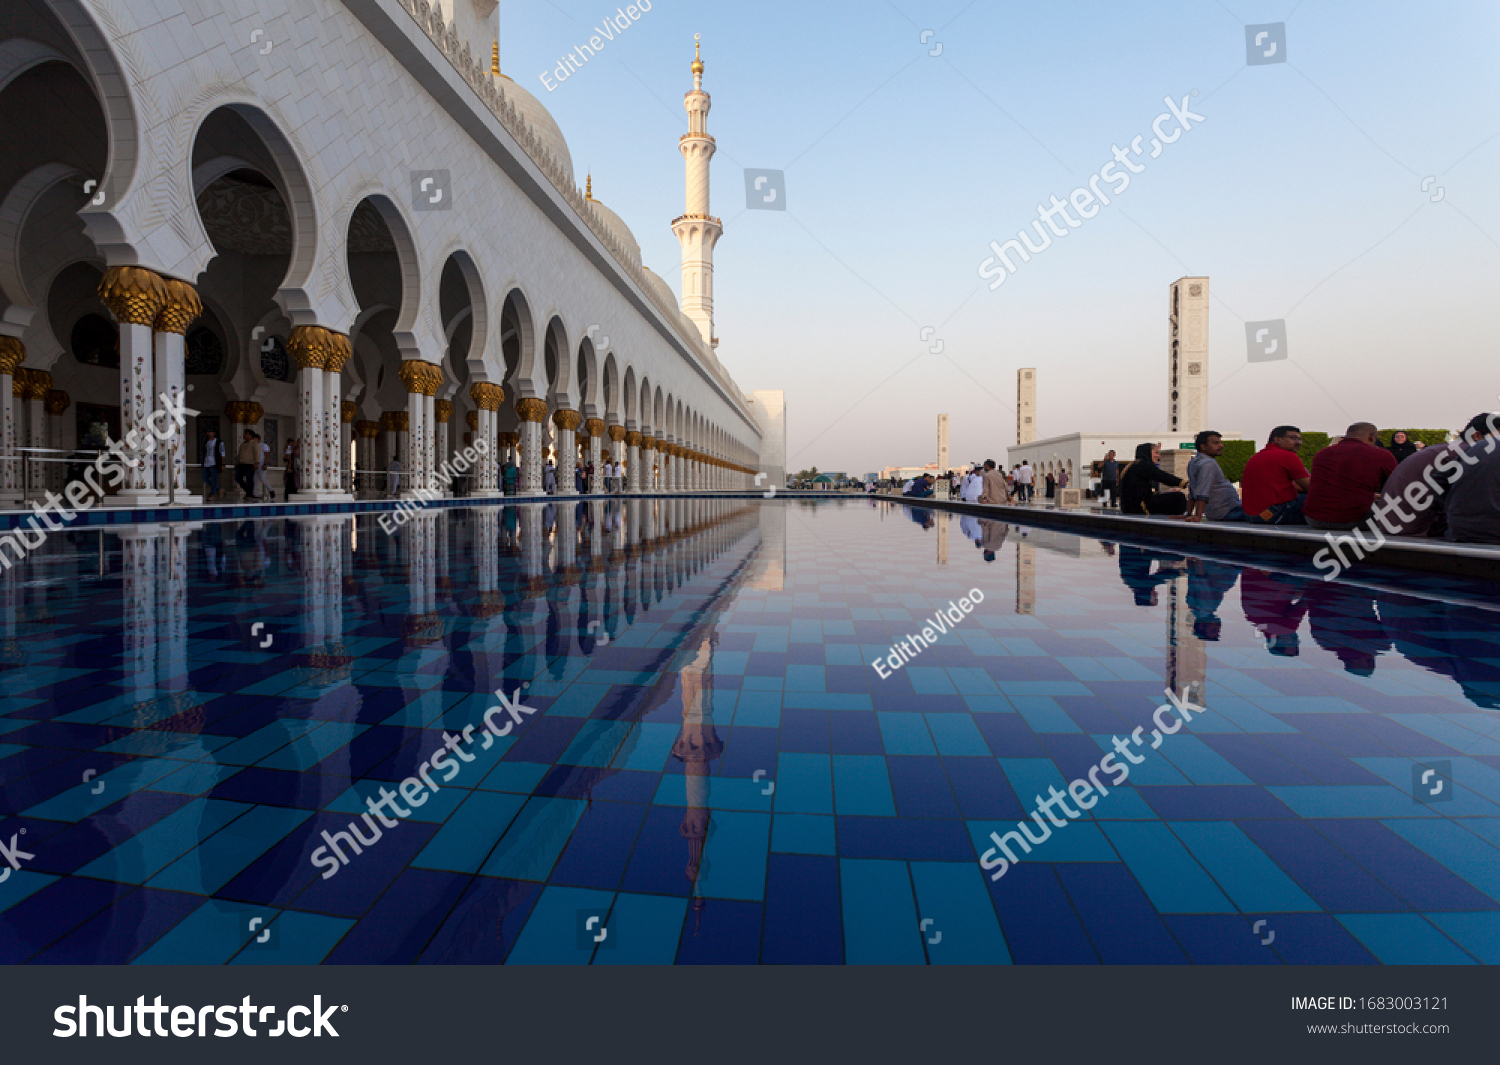 stock-photo-abu-dhabi-uae-march-pool-of-